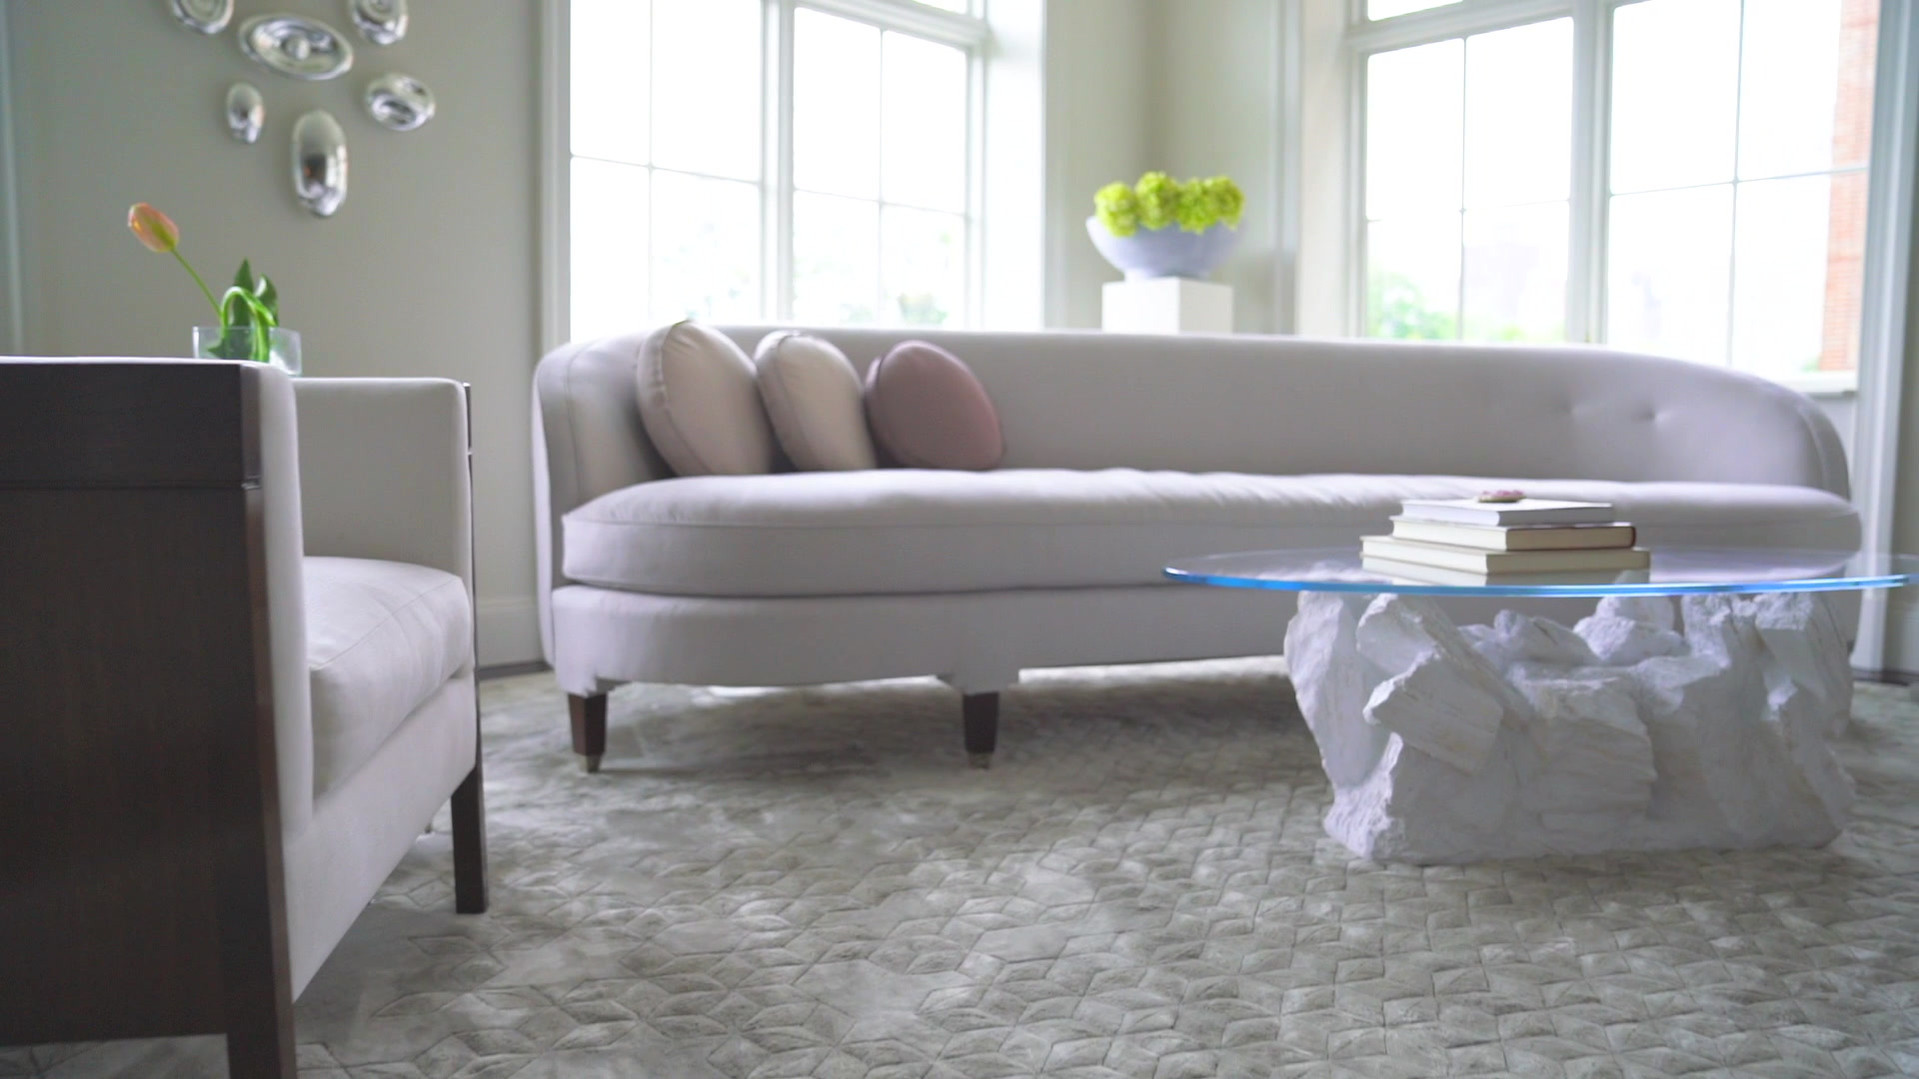 Park View | Highlight Video | Lisa Tharp Design